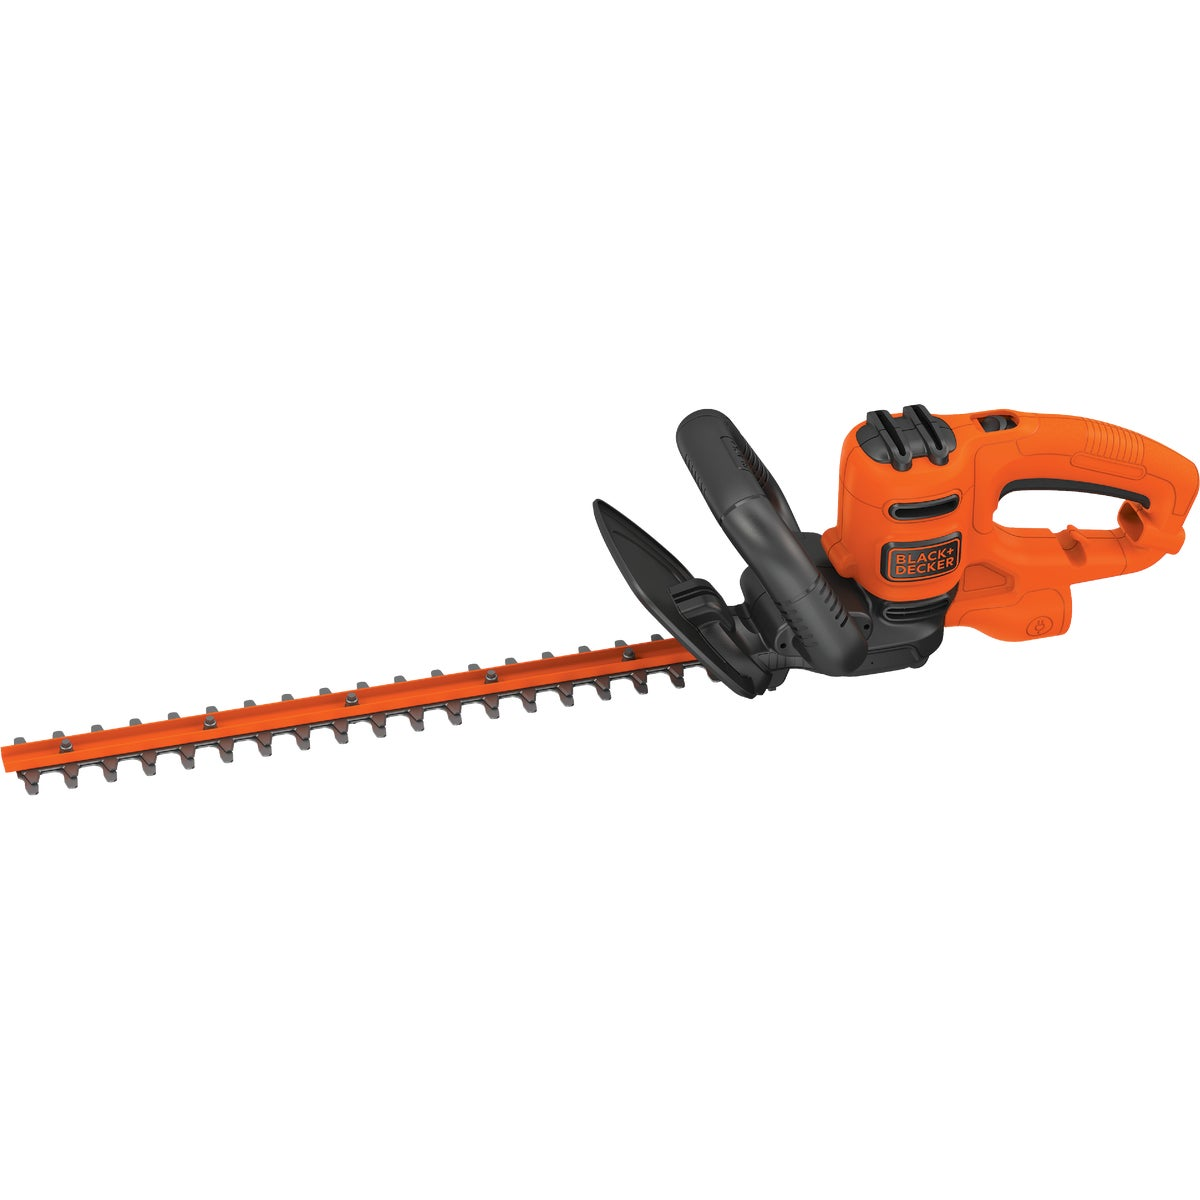 "18"" HEDGE TRIMMER - HT18 by Black & Decker"